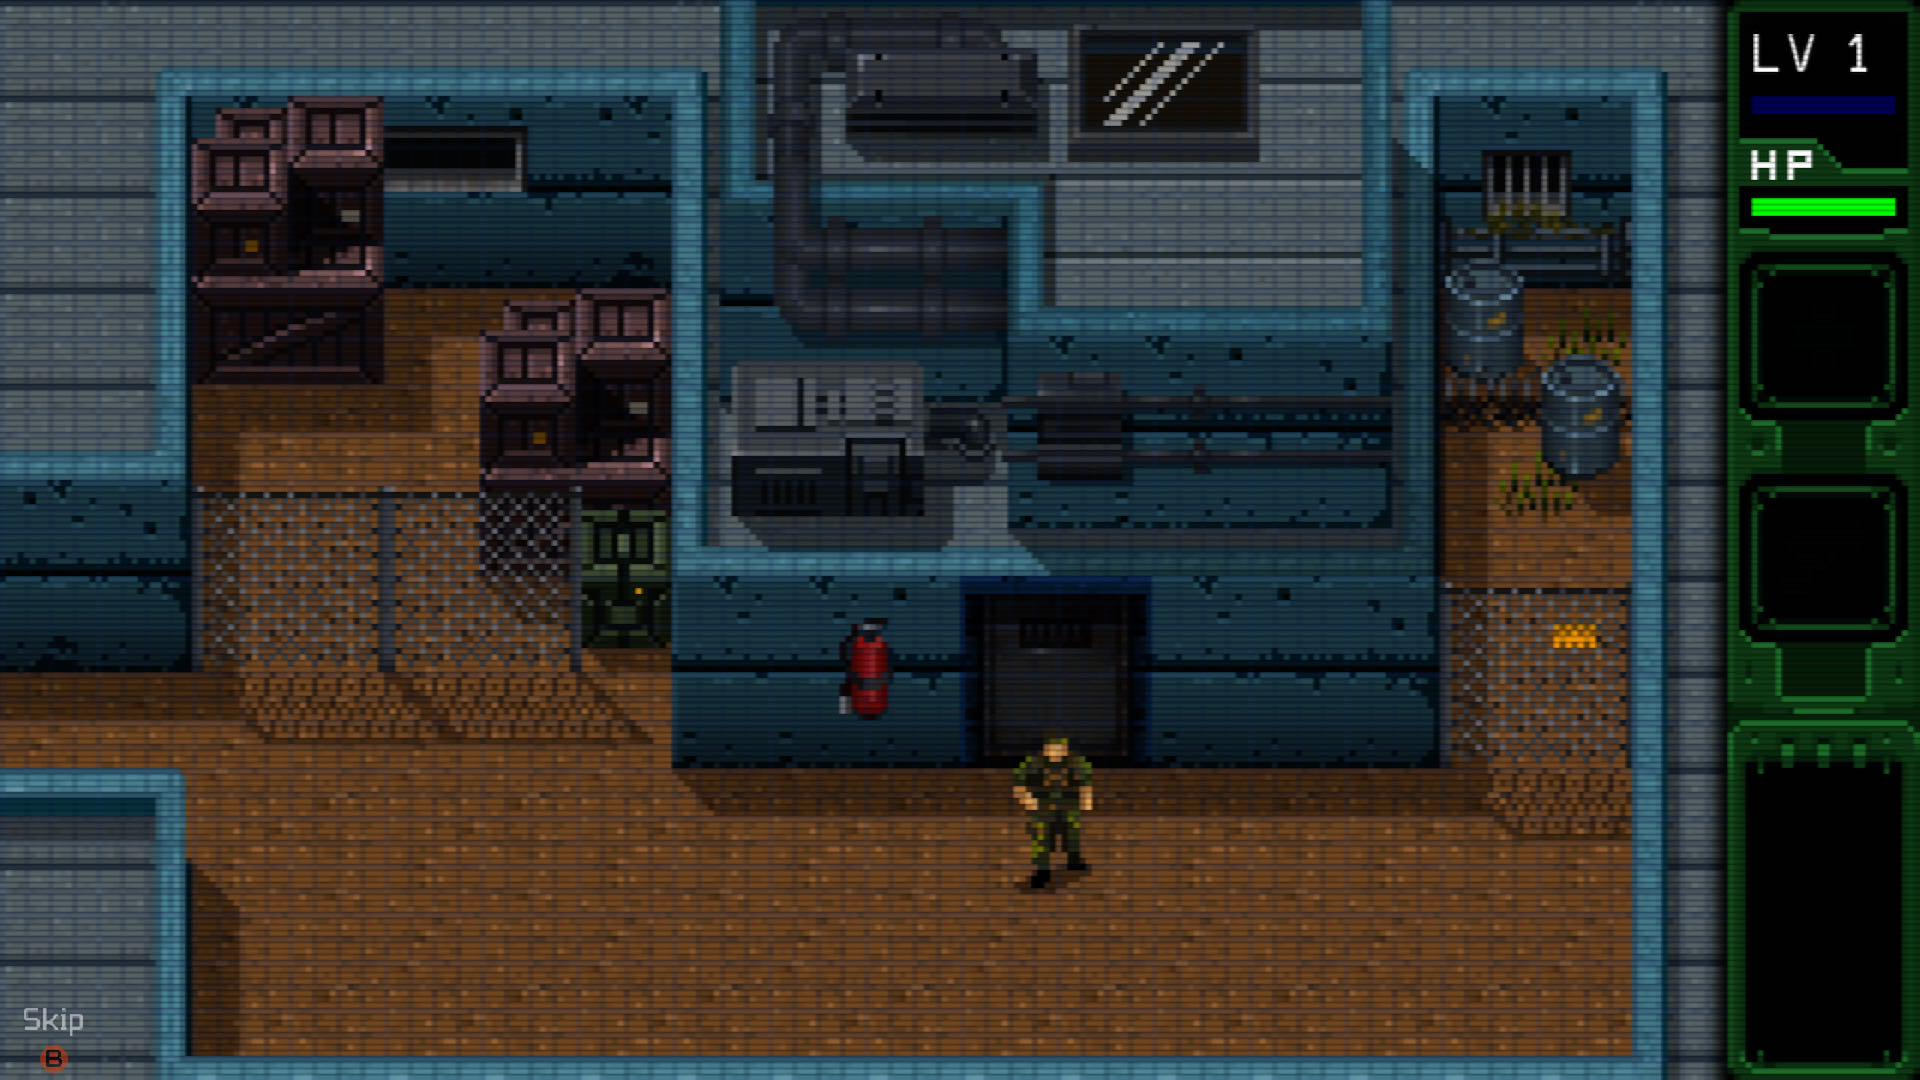 A screenshot from UnMetal, you're exploring a military facility of some sort, with barrels and crates lying around and a guard standing watch.